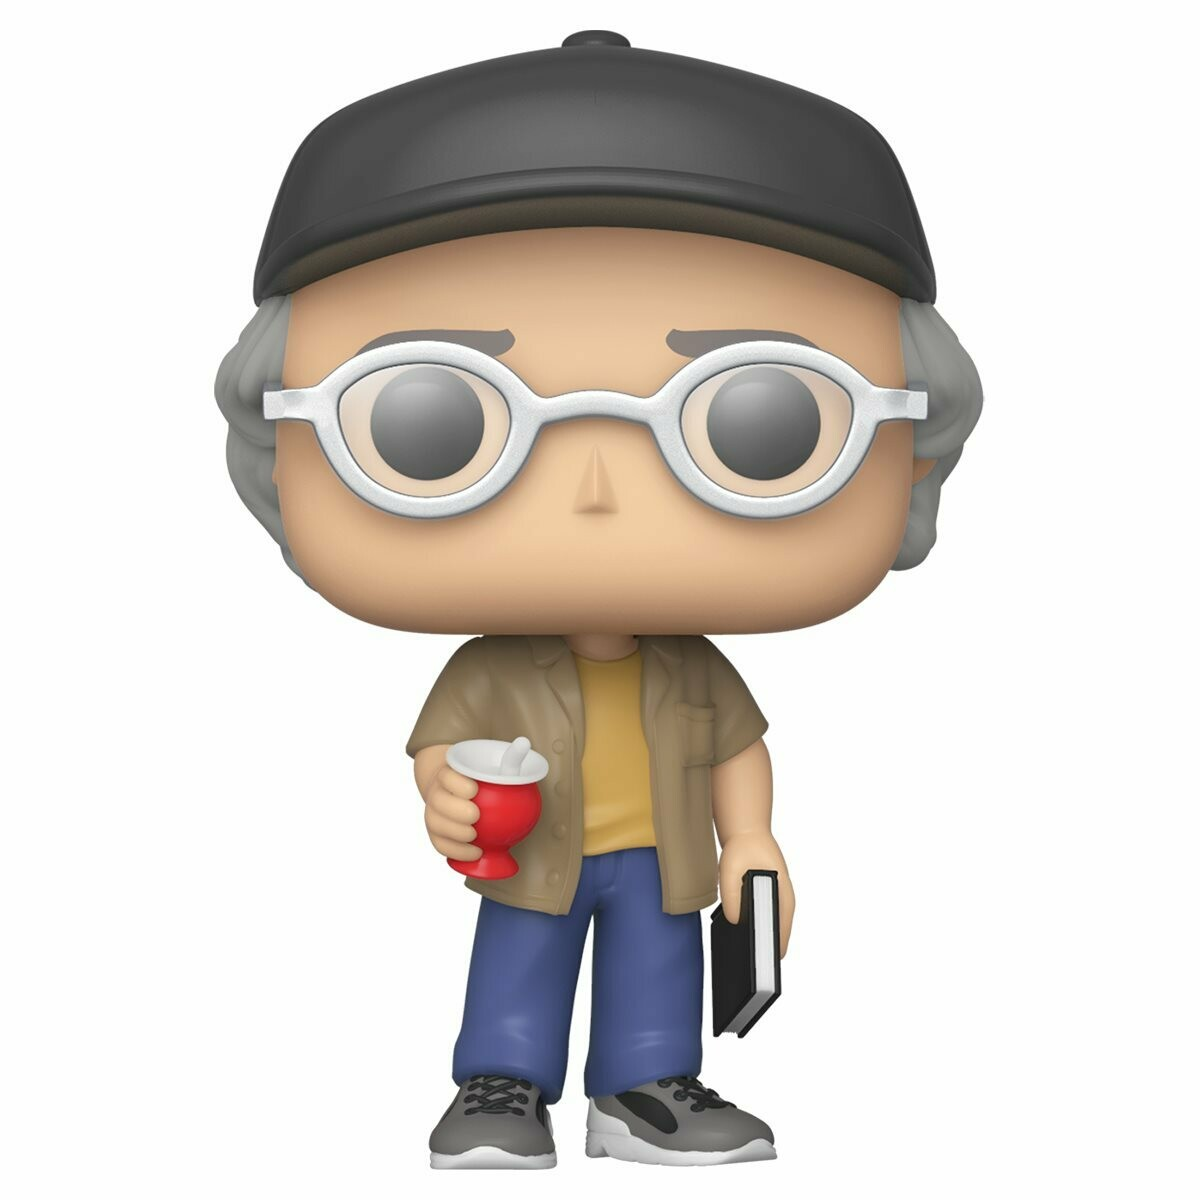 Funko It 2 Shopkeeper (Stephen King) Pop! Vinyl Figure